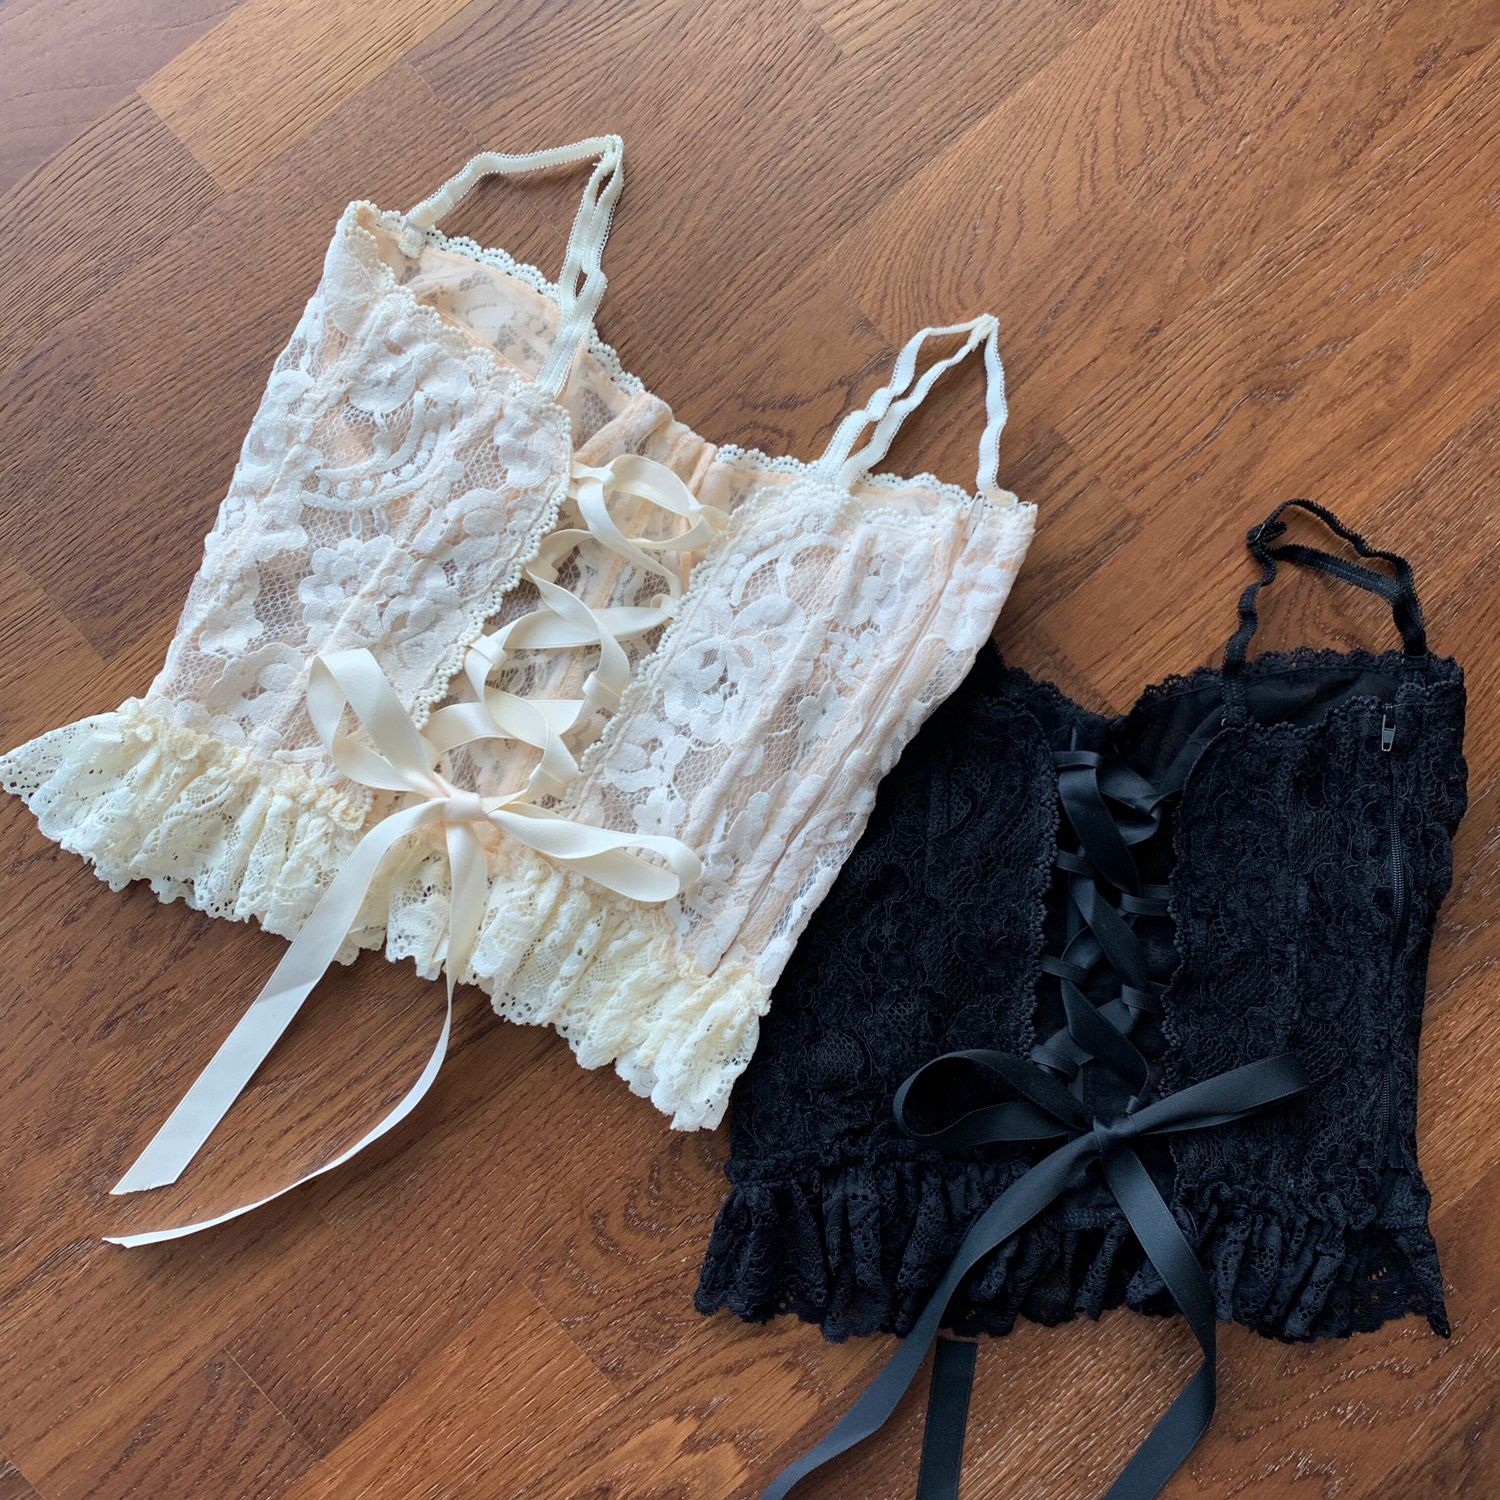 <font><b>Crop</b></font> <font><b>Top</b></font> Woman 2020 Spring Summer <font><b>Sexy</b></font> Lace Straps Hollow Flower <font><b>Crochet</b></font> Lace-up Lace Frill Spaghetti-Strap Women's Camisole <font><b>Top</b></font> image